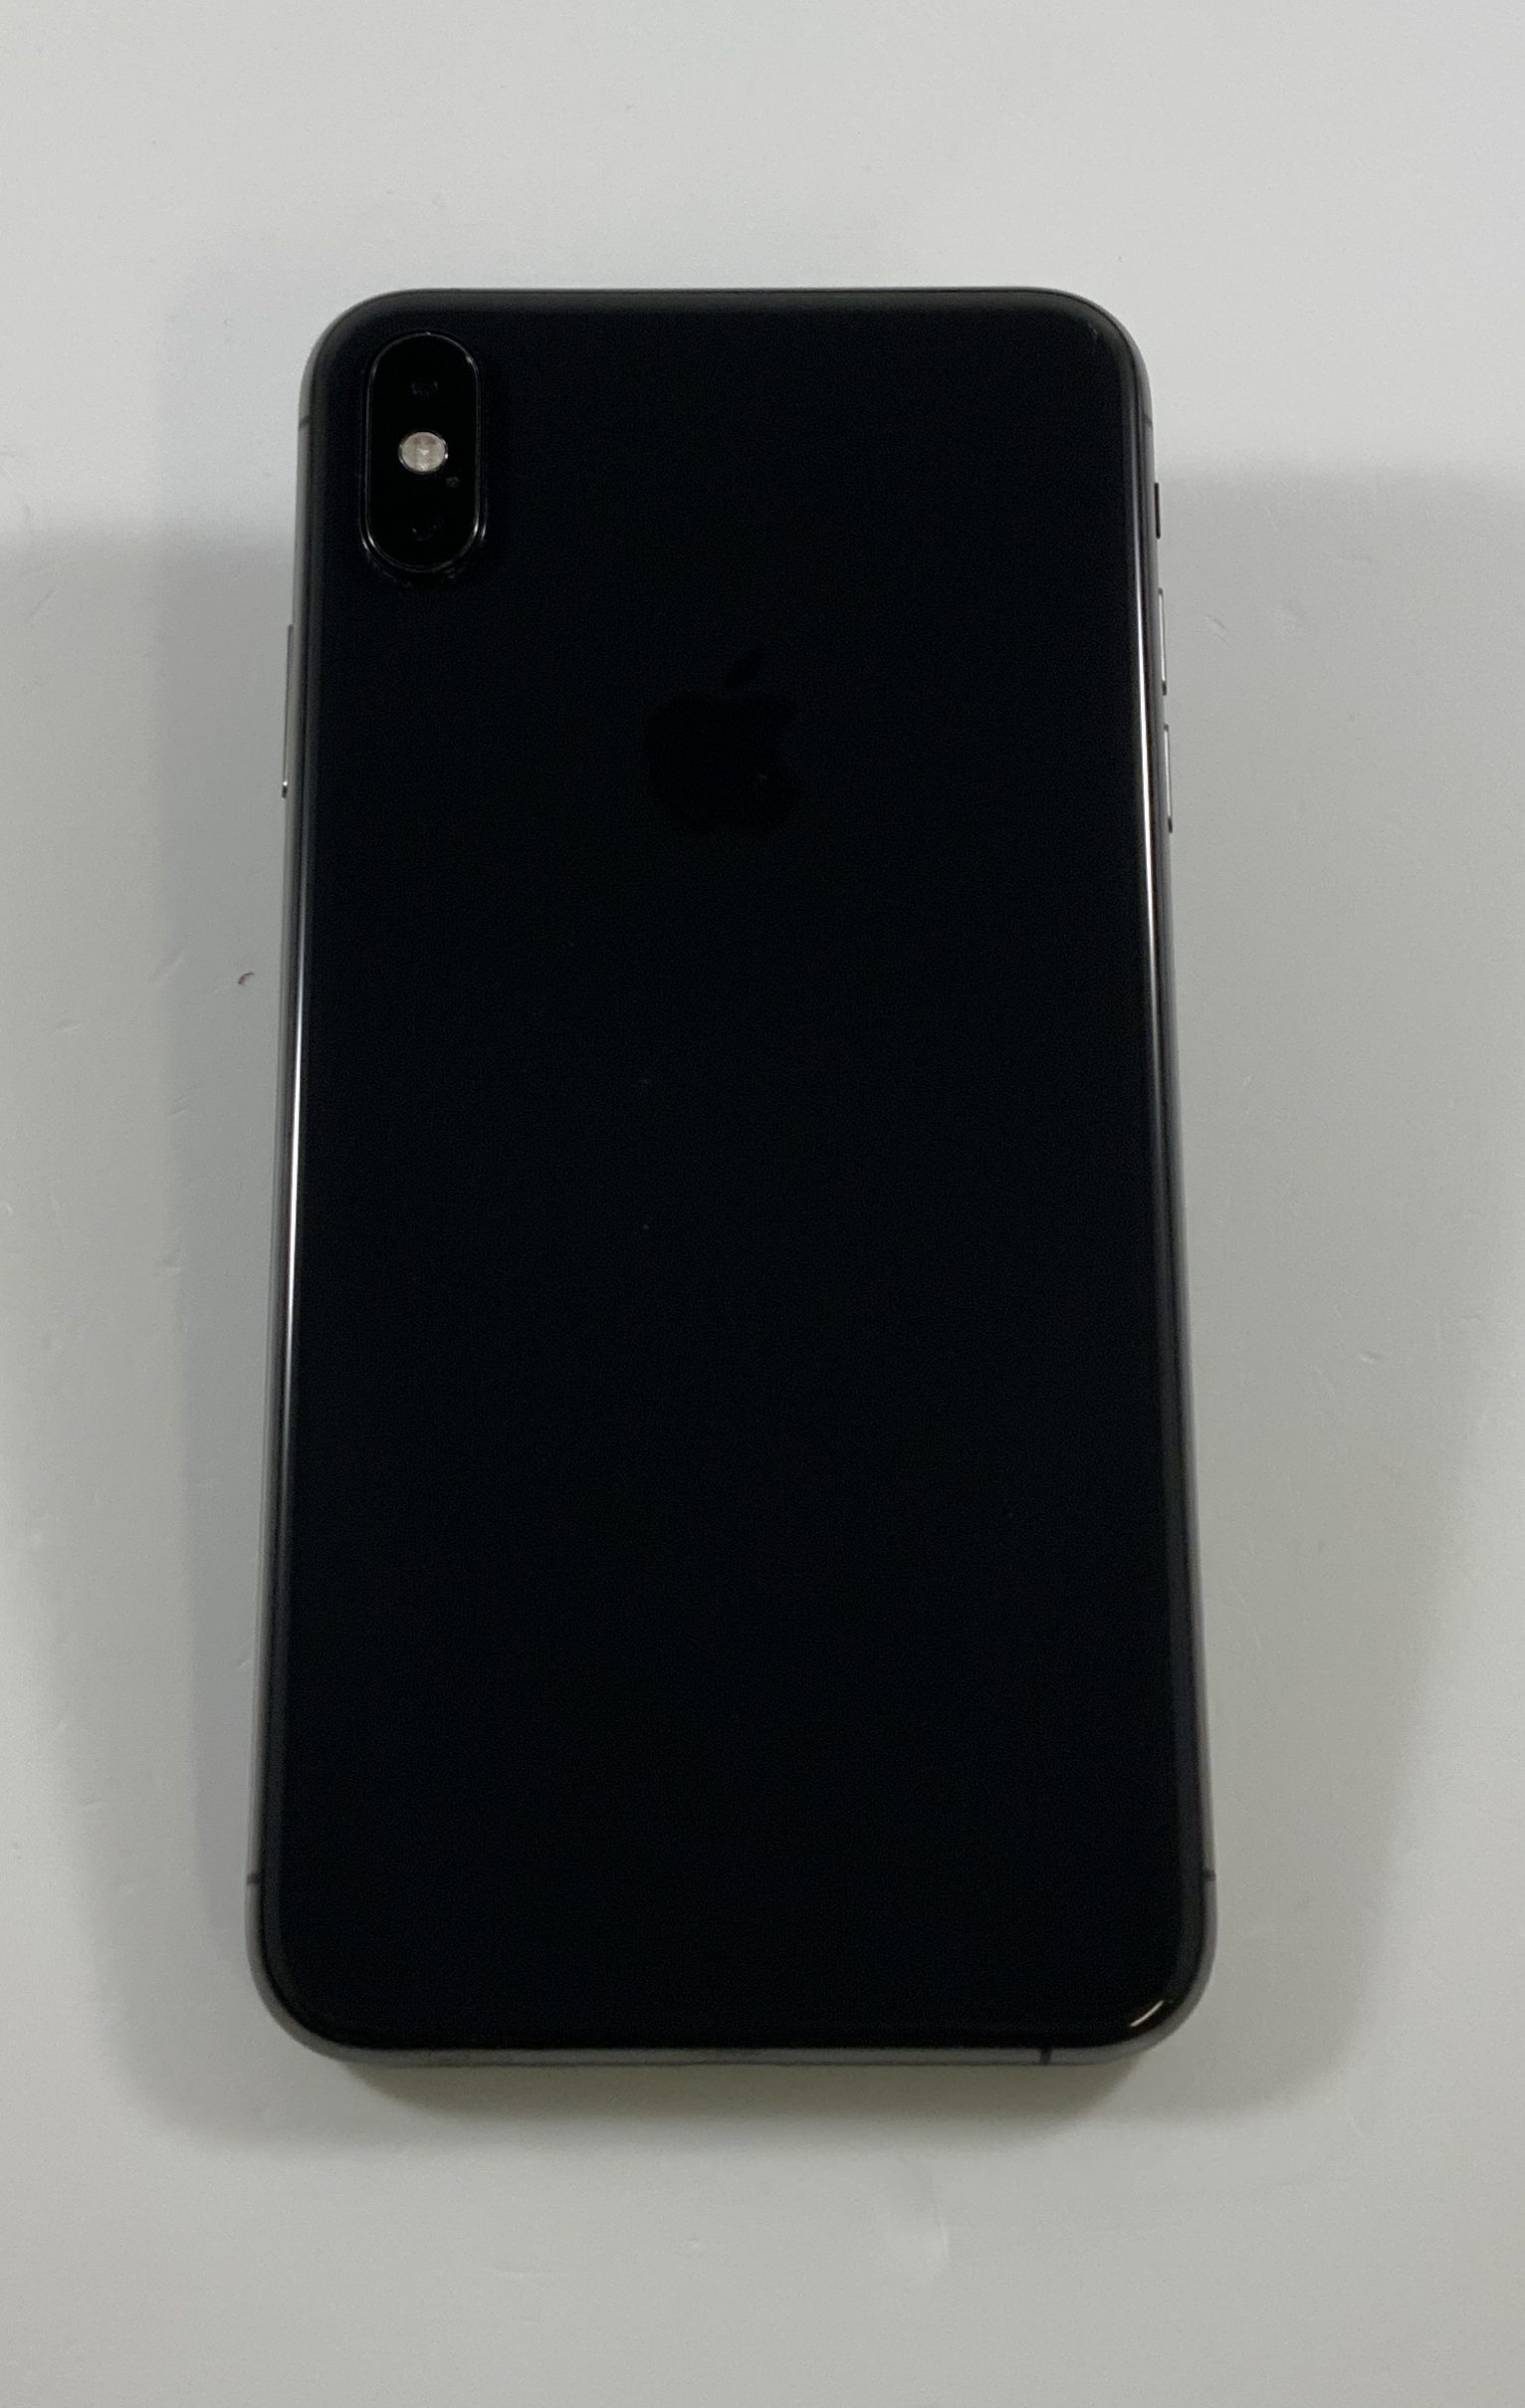 iPhone XS Max 256GB, 256GB, Space Gray, bild 2